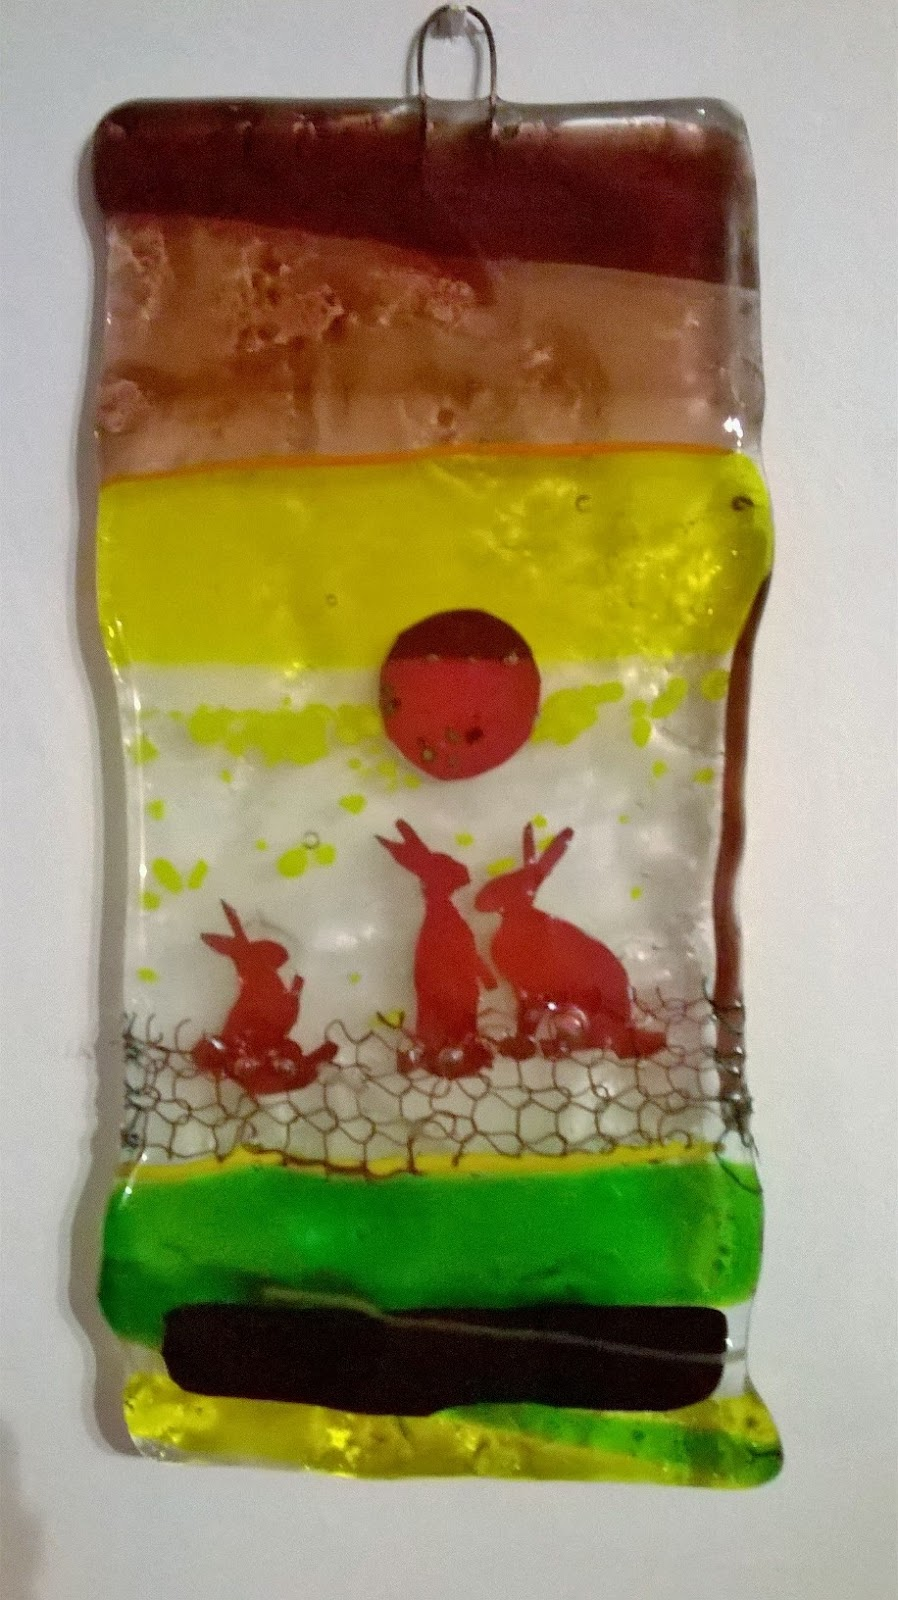 little brick house clayworks: glass fusion experiments